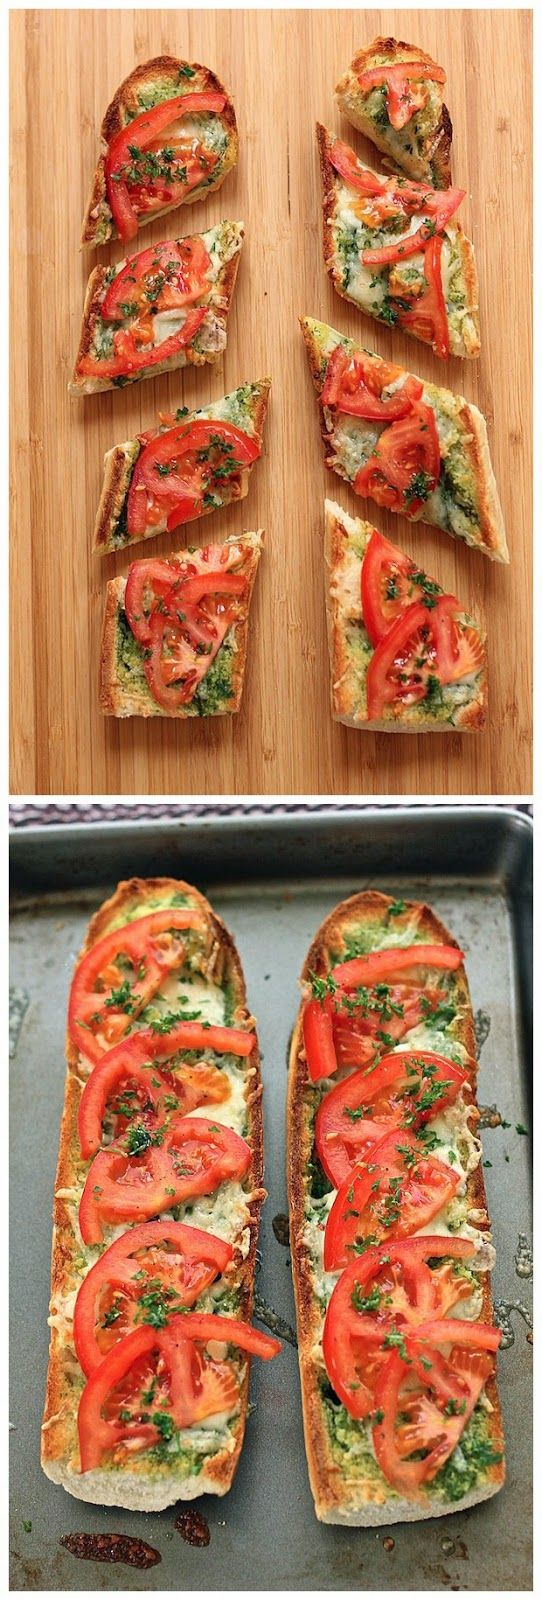 Open Faced Grilled Cheese with Tomato